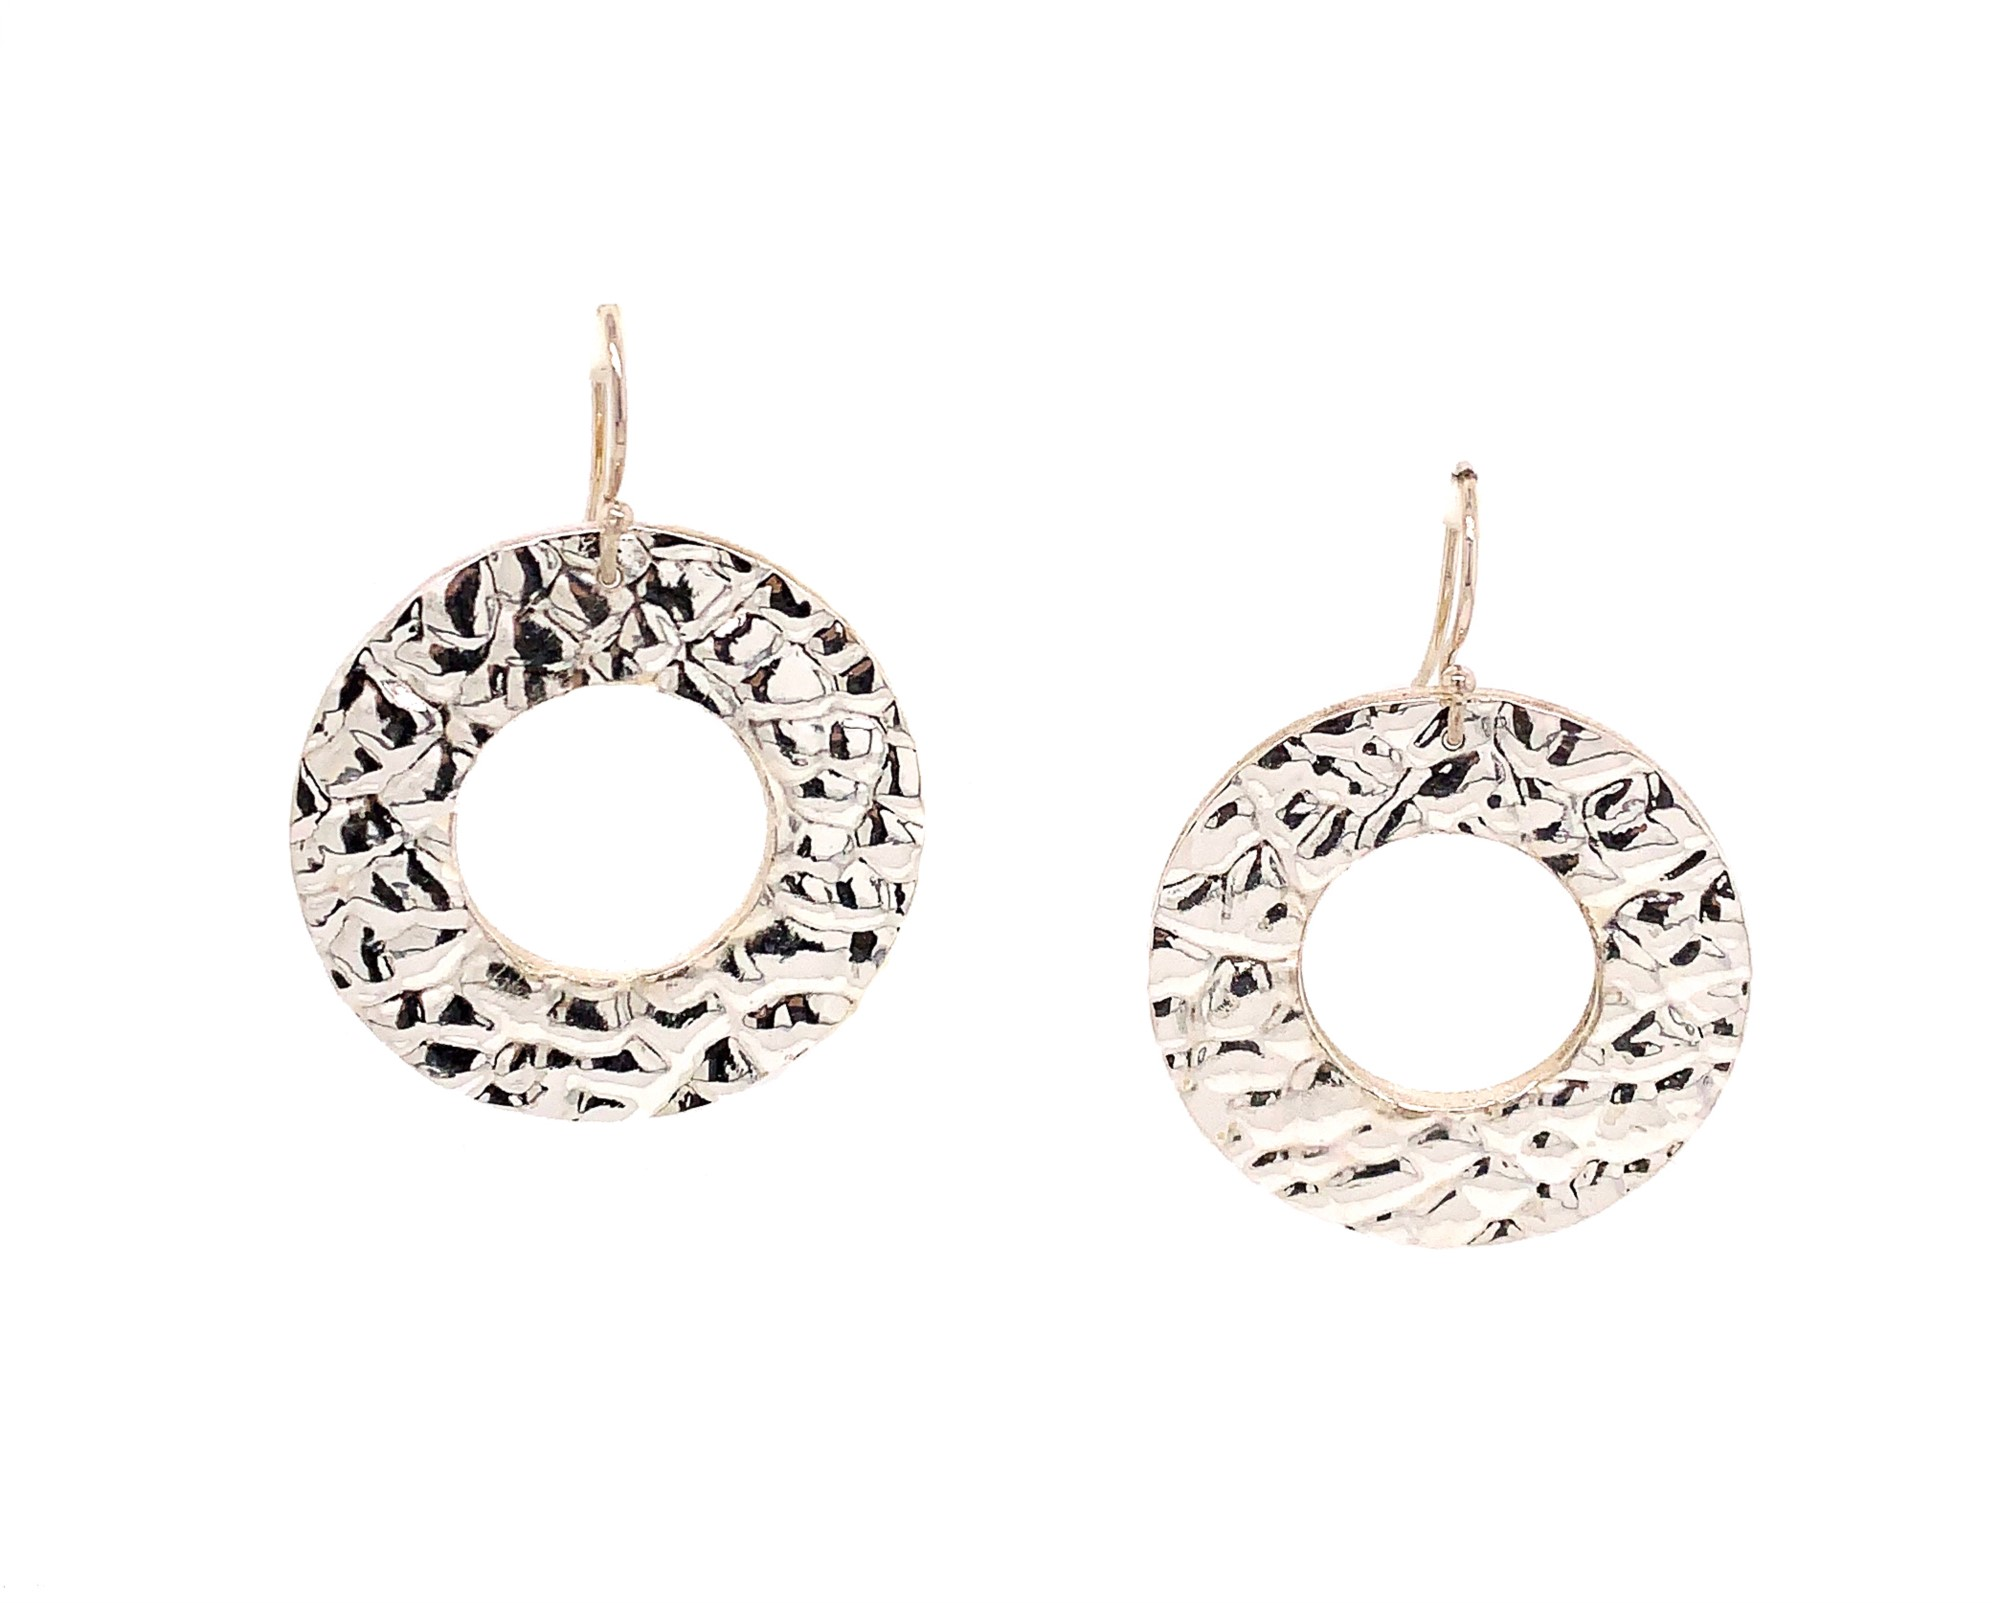 Jewel Lab  Fine Silver    Silver Earrings Urban Jungle Selvatica (croc) Round Earrings